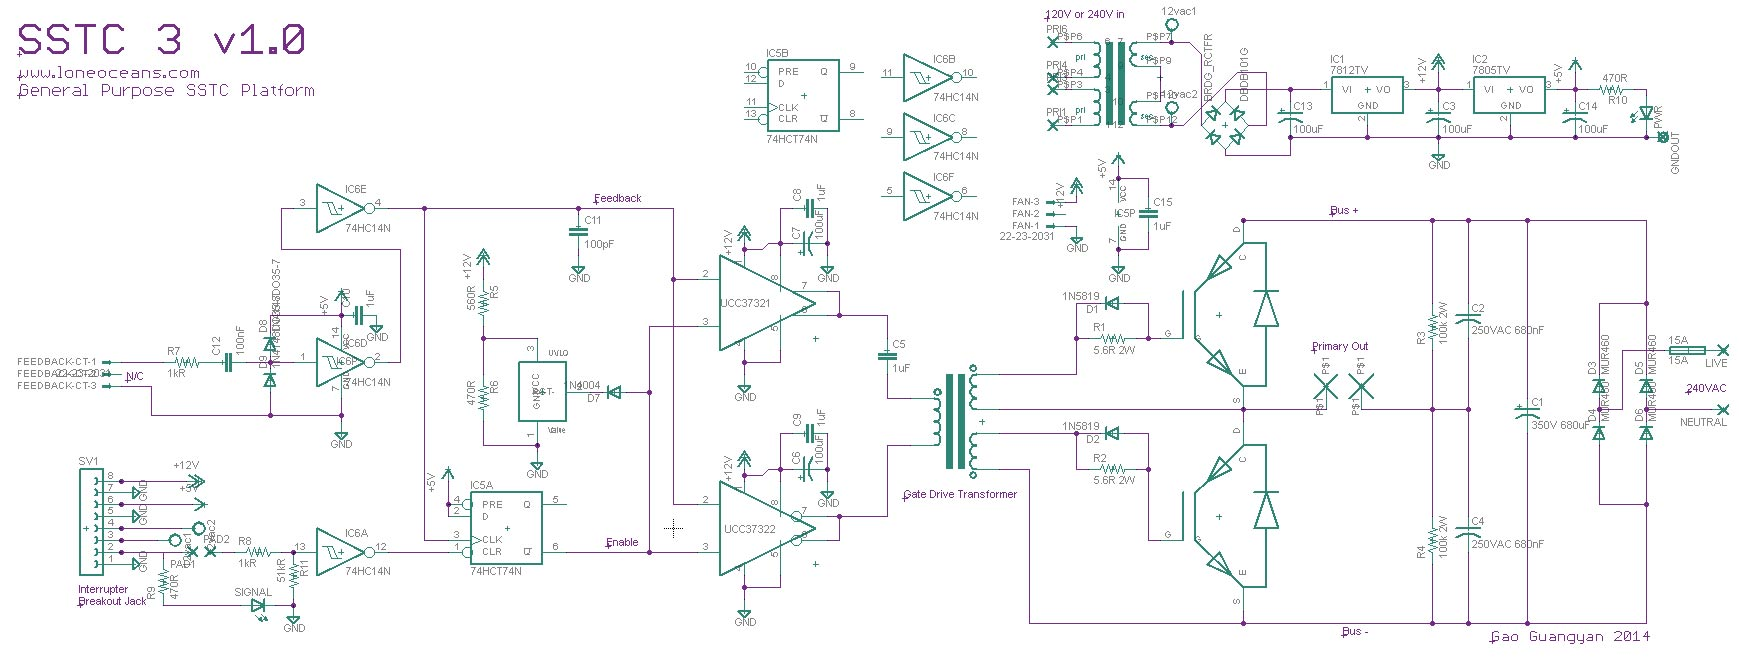 Ramped Sstc 3 Qcw Like Sparks Loneoceans Laboratories Here The Circuit Diagram Of Solid State Tesla Coil With 555 Timer Heres A Quick Description Top Right Describes General Low Voltage Power Supply Providing 12v For Gate Drivers And Fan